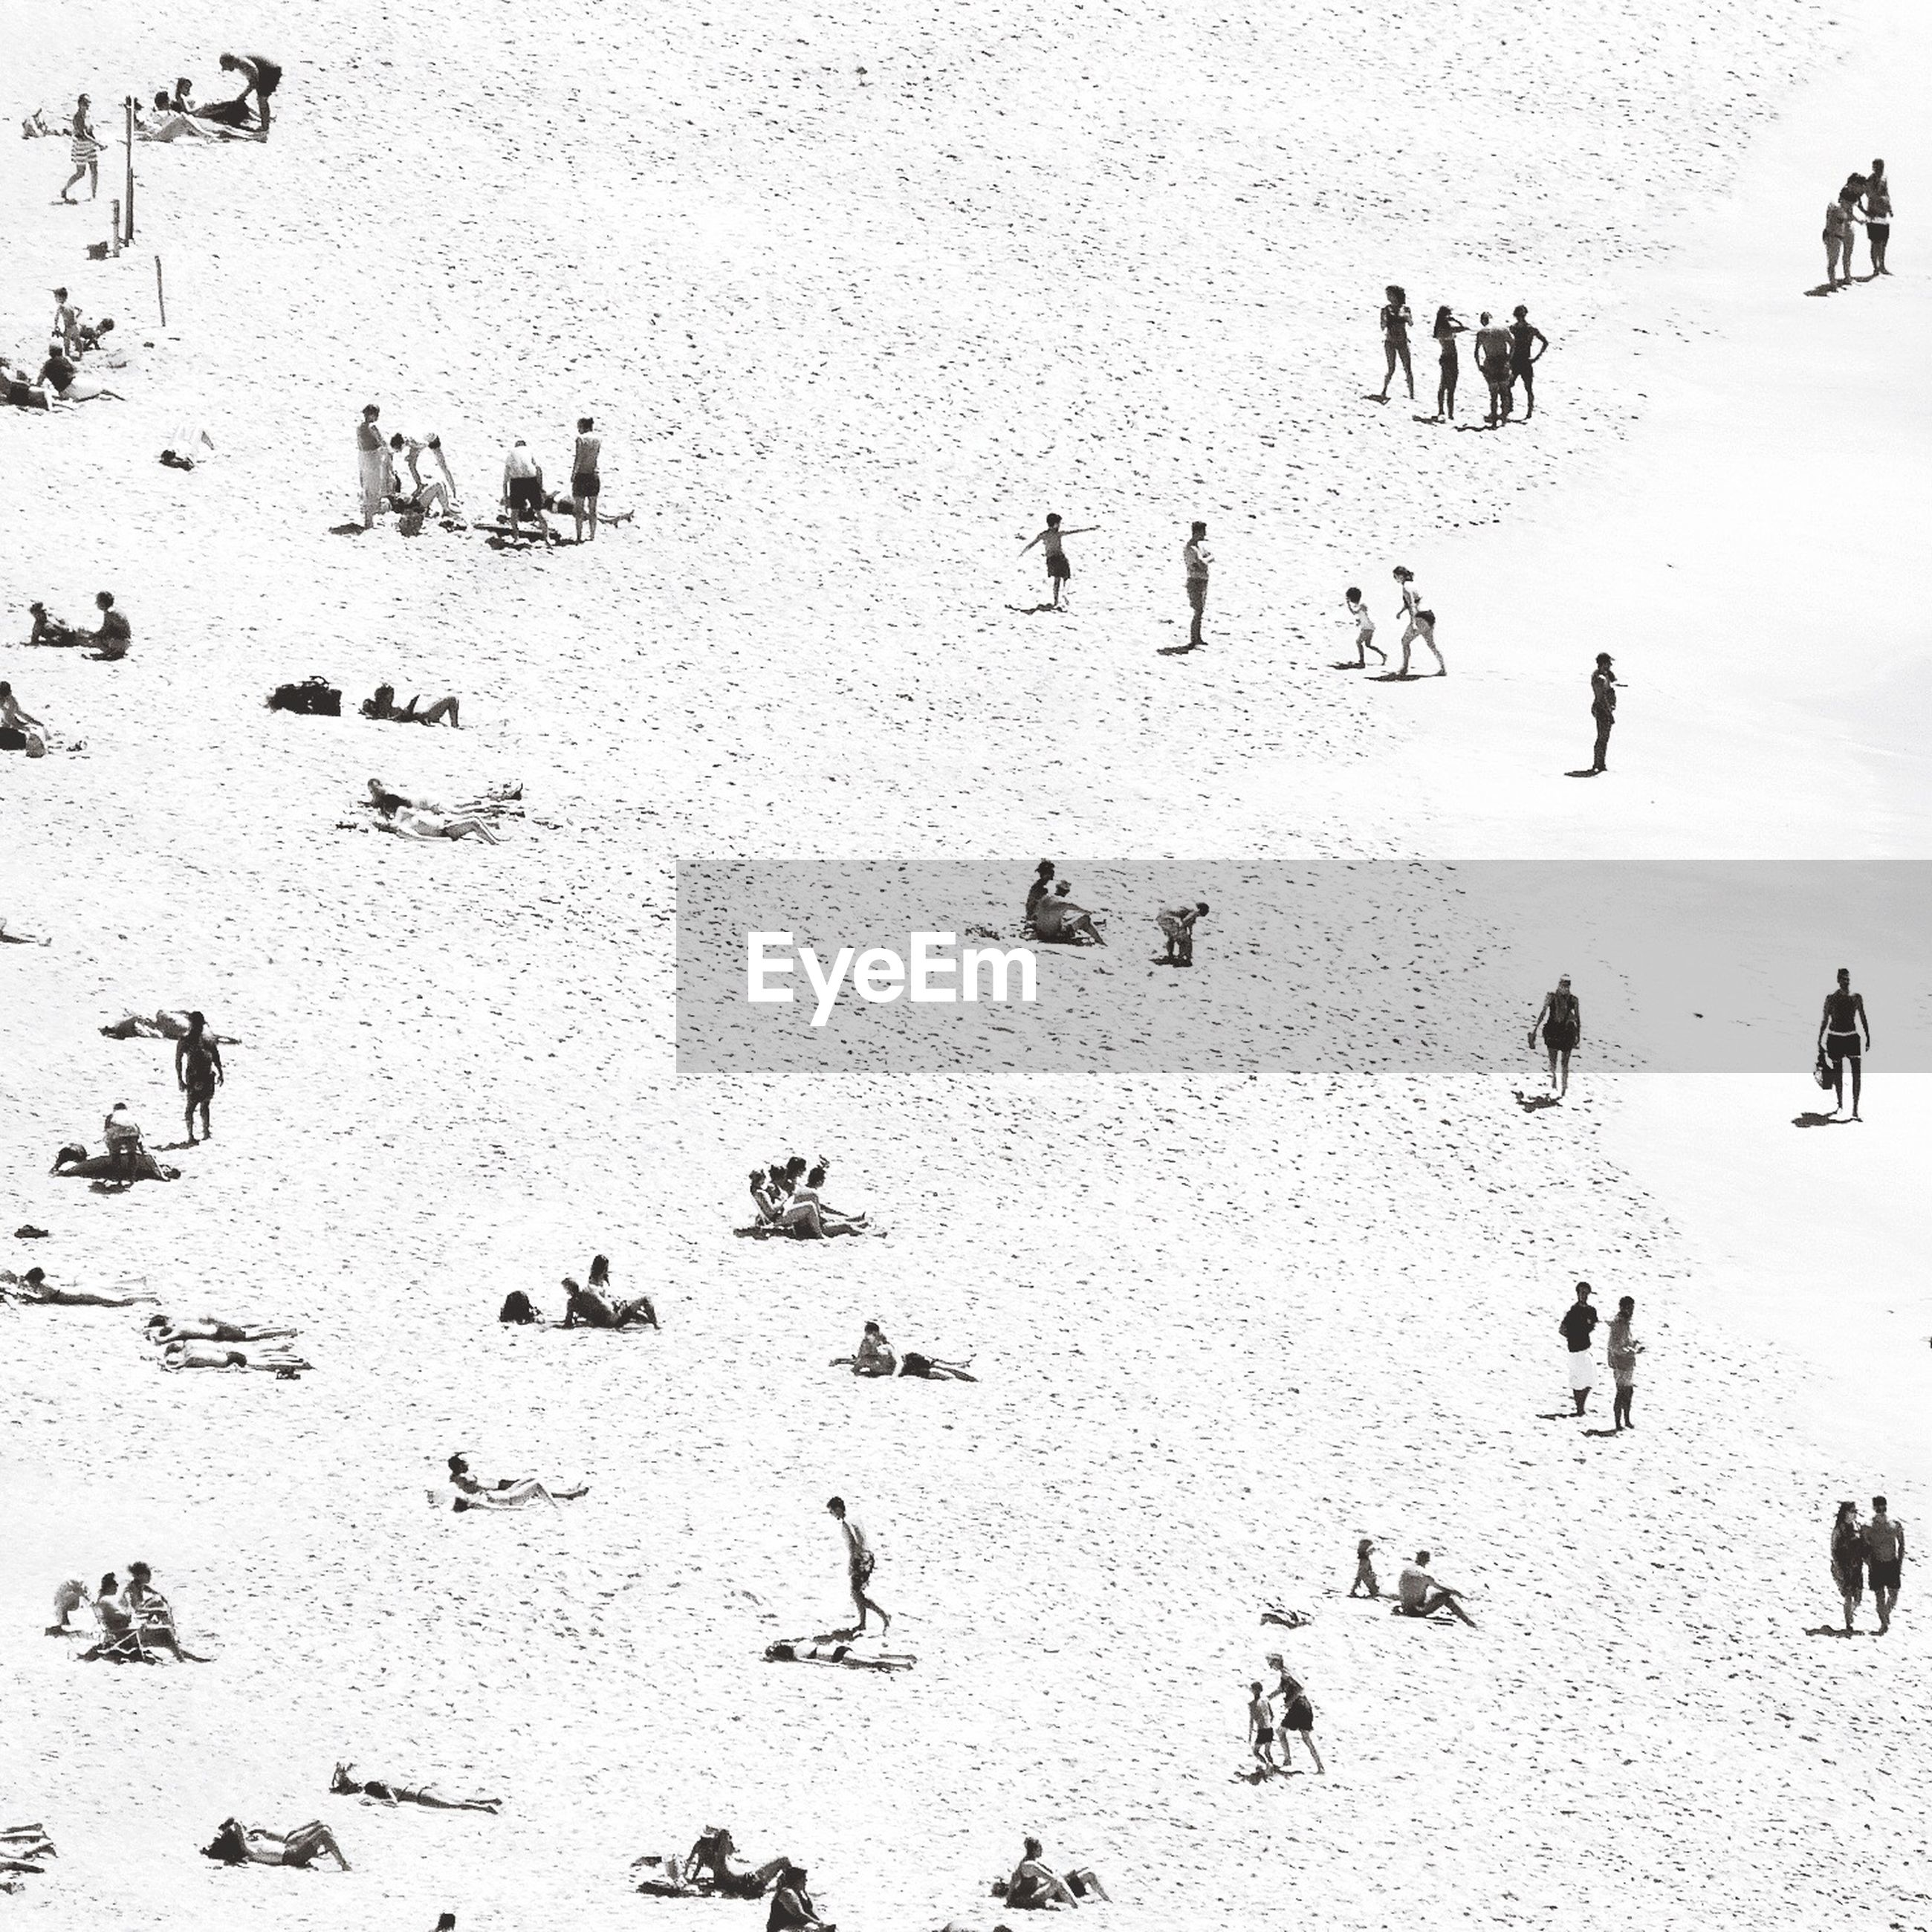 HIGH ANGLE VIEW OF PEOPLE ON SNOW COVERED BEACH